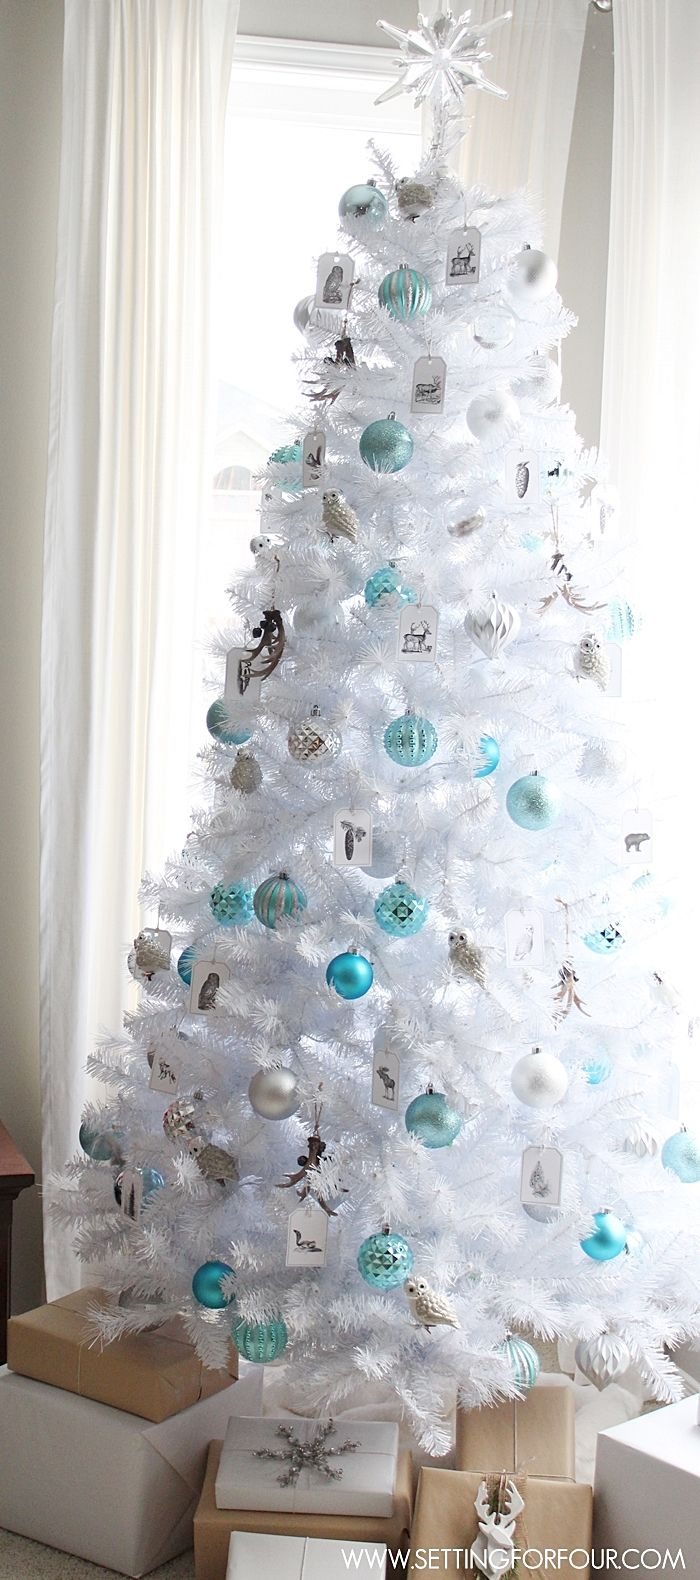 winter woodland glam white christmas tree diy ideas pinterest christmas white christmas trees and christmas tree decorations - Pictures Of White Christmas Trees Decorated